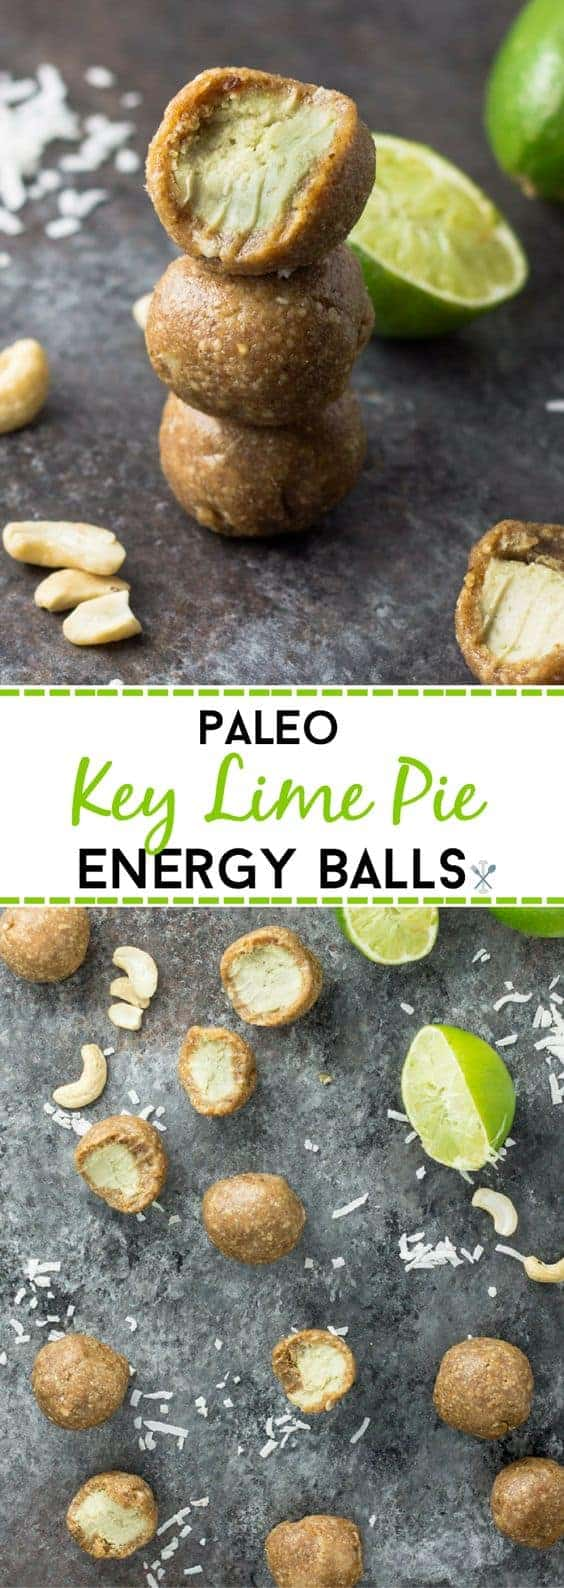 Paleo Key Lime Pie Energy Balls by Physical Kitchness | The best collection of energy bites recipes around!